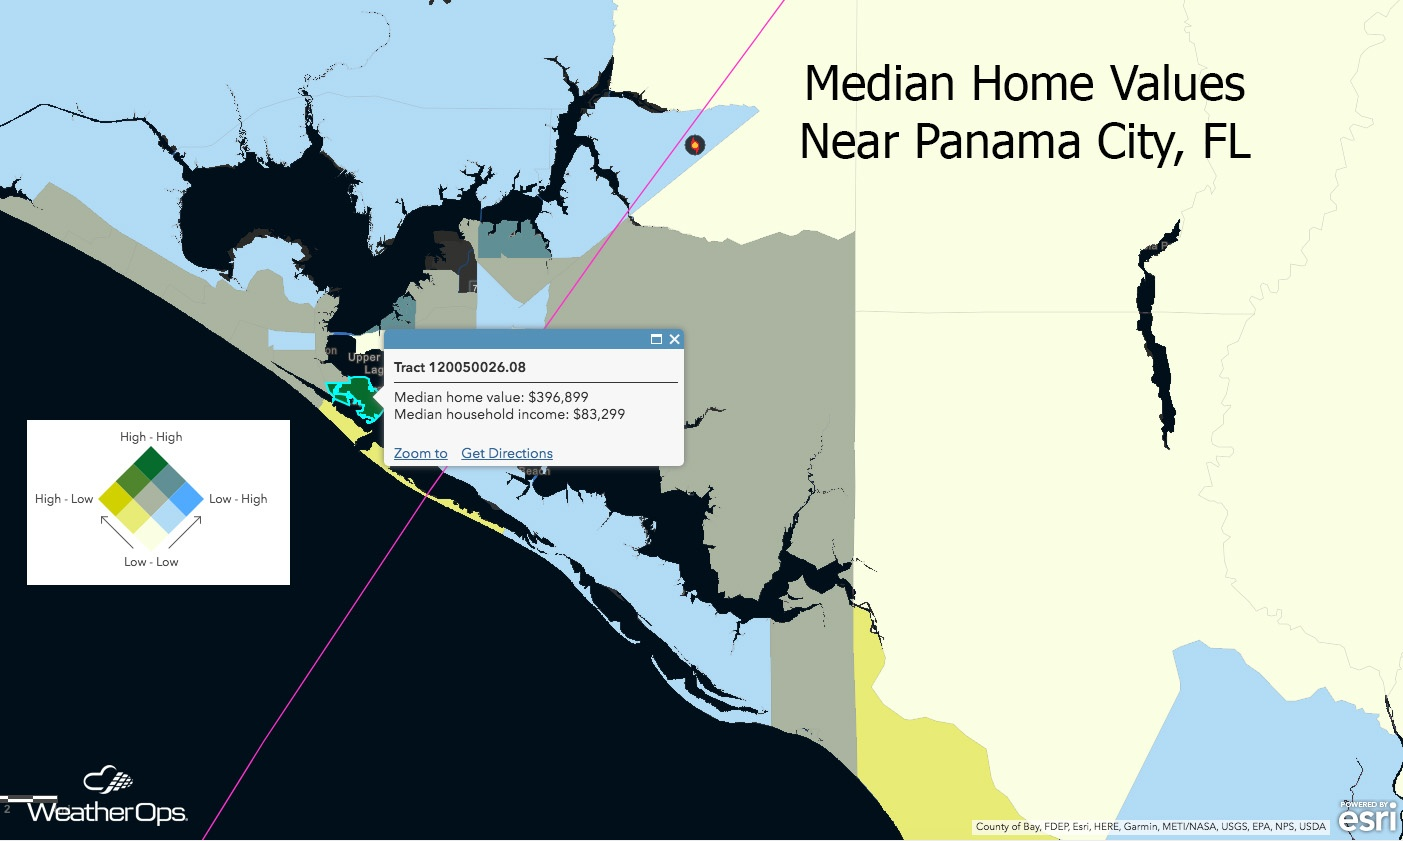 Median Home Values Near Panama City